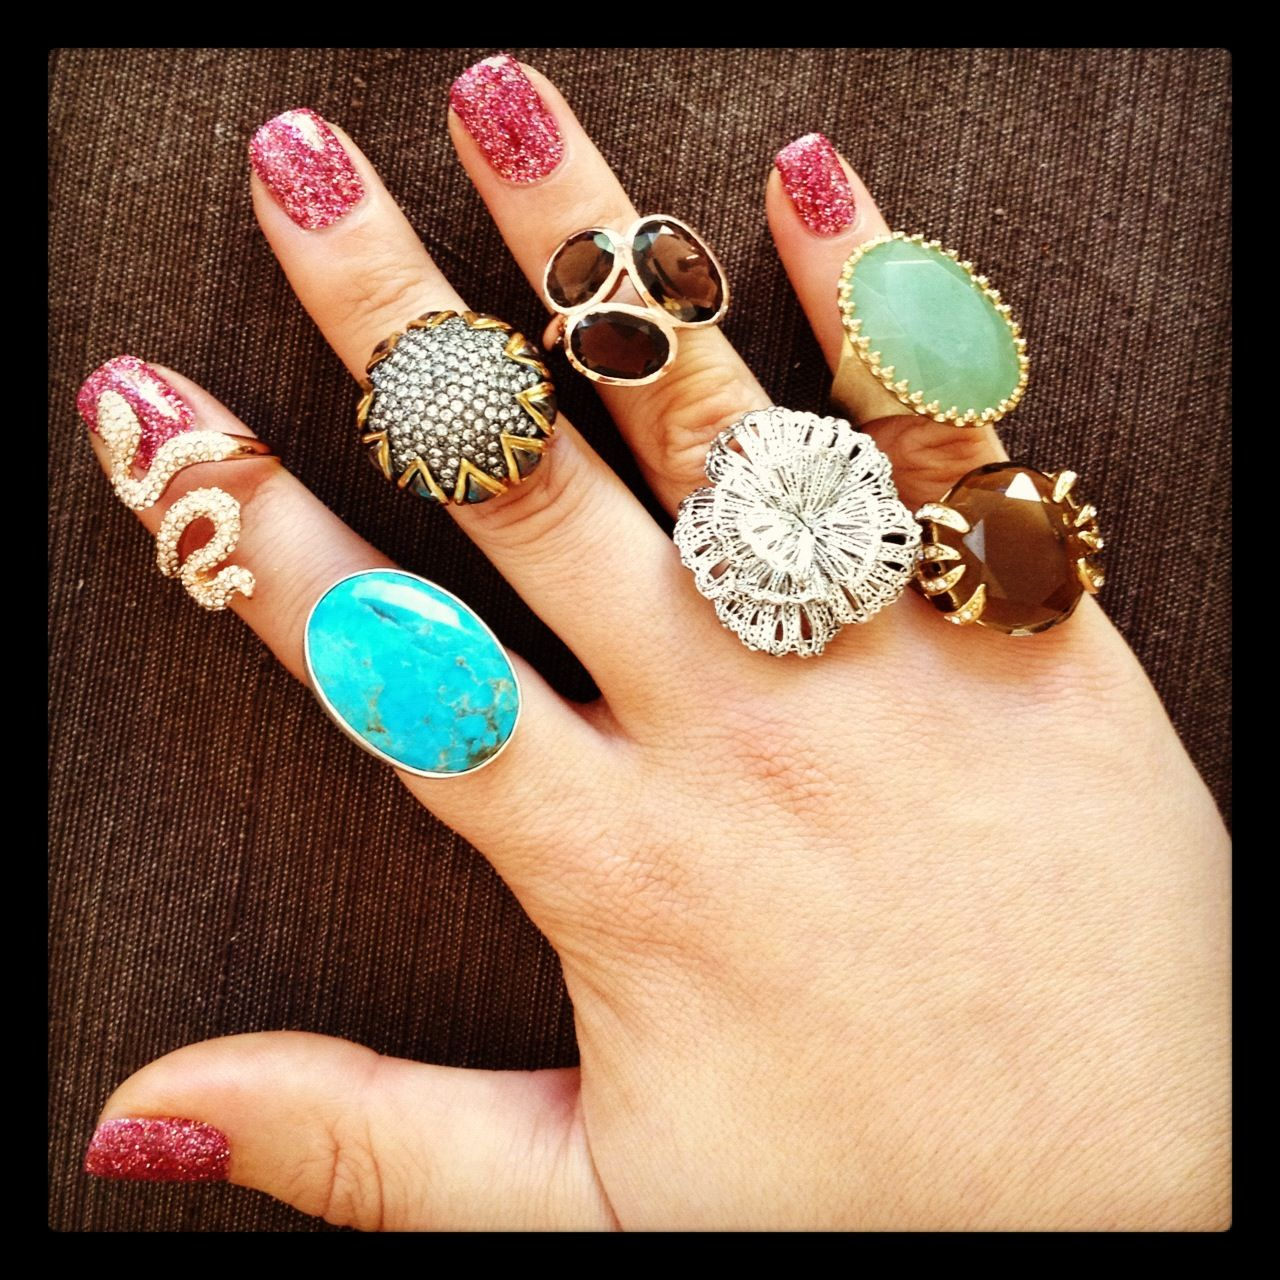 Pink Glitter Rockstar Nails And Ring Festival Http Www Stelladot Com Ts Er8m5 Stella And Dot Nail Ring Retro Accessories